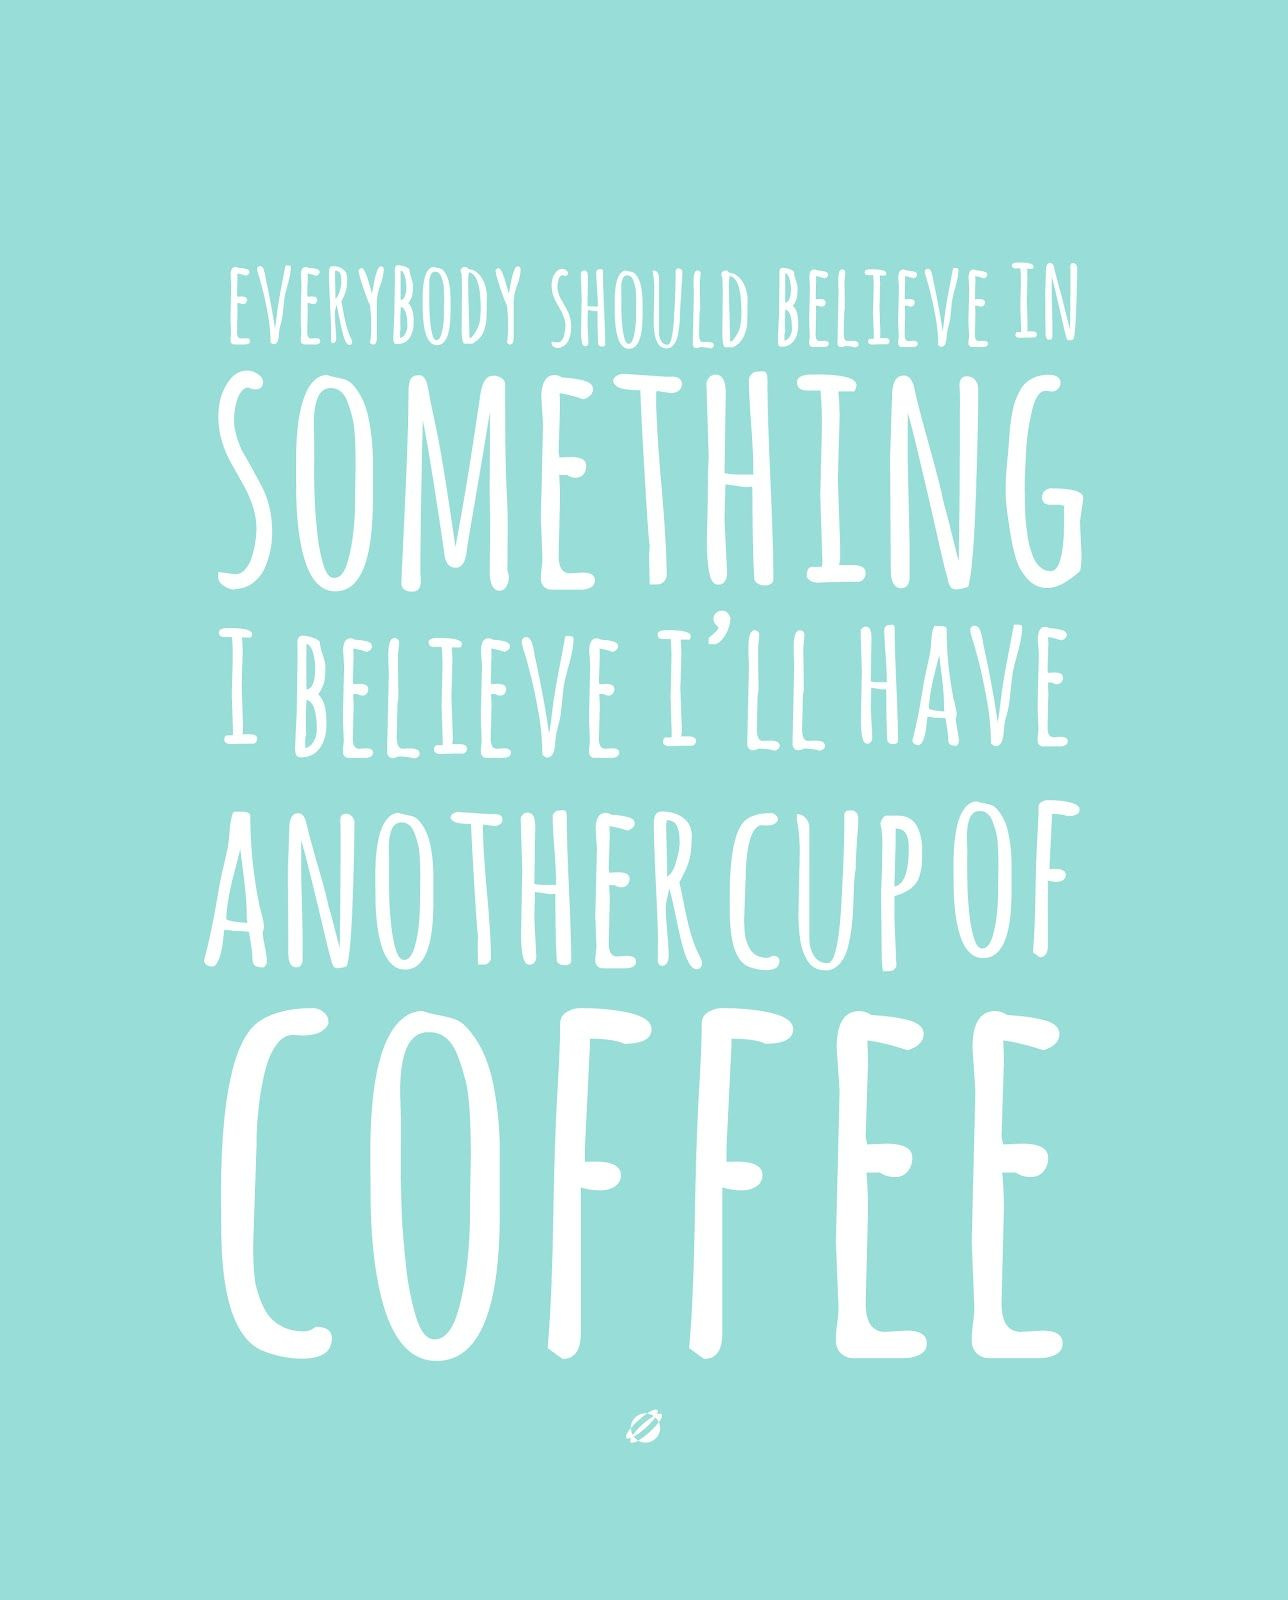 LostBumblebee ©2014 Coffee Believe - Free Printable | coffee ...